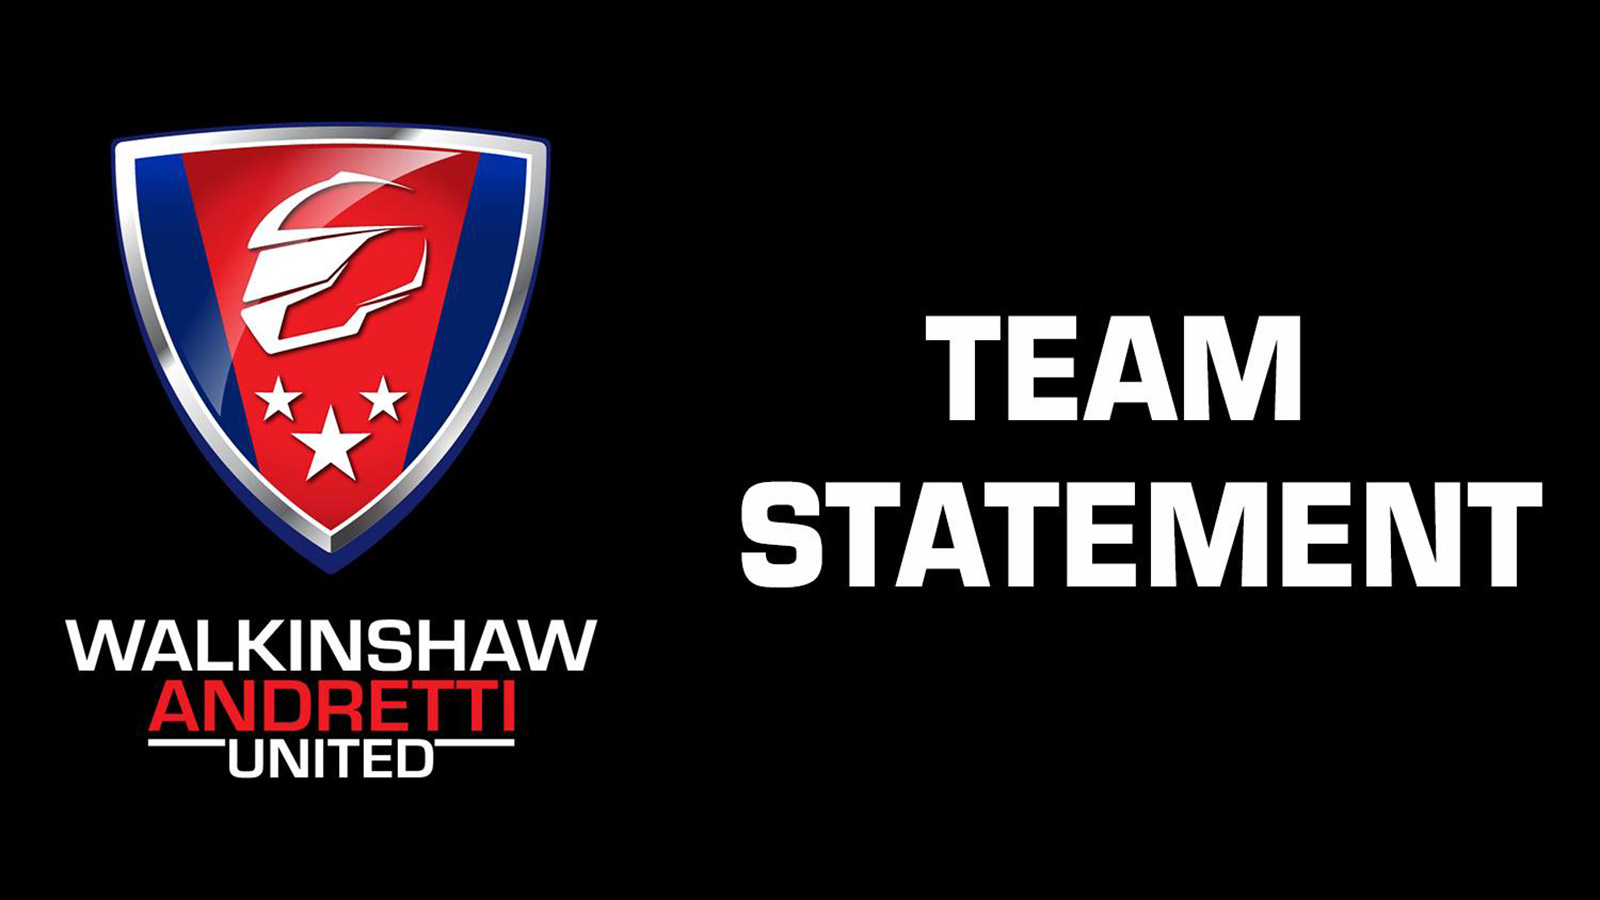 Everyone at Walkinshaw Andretti United wish Mathew well for the future.